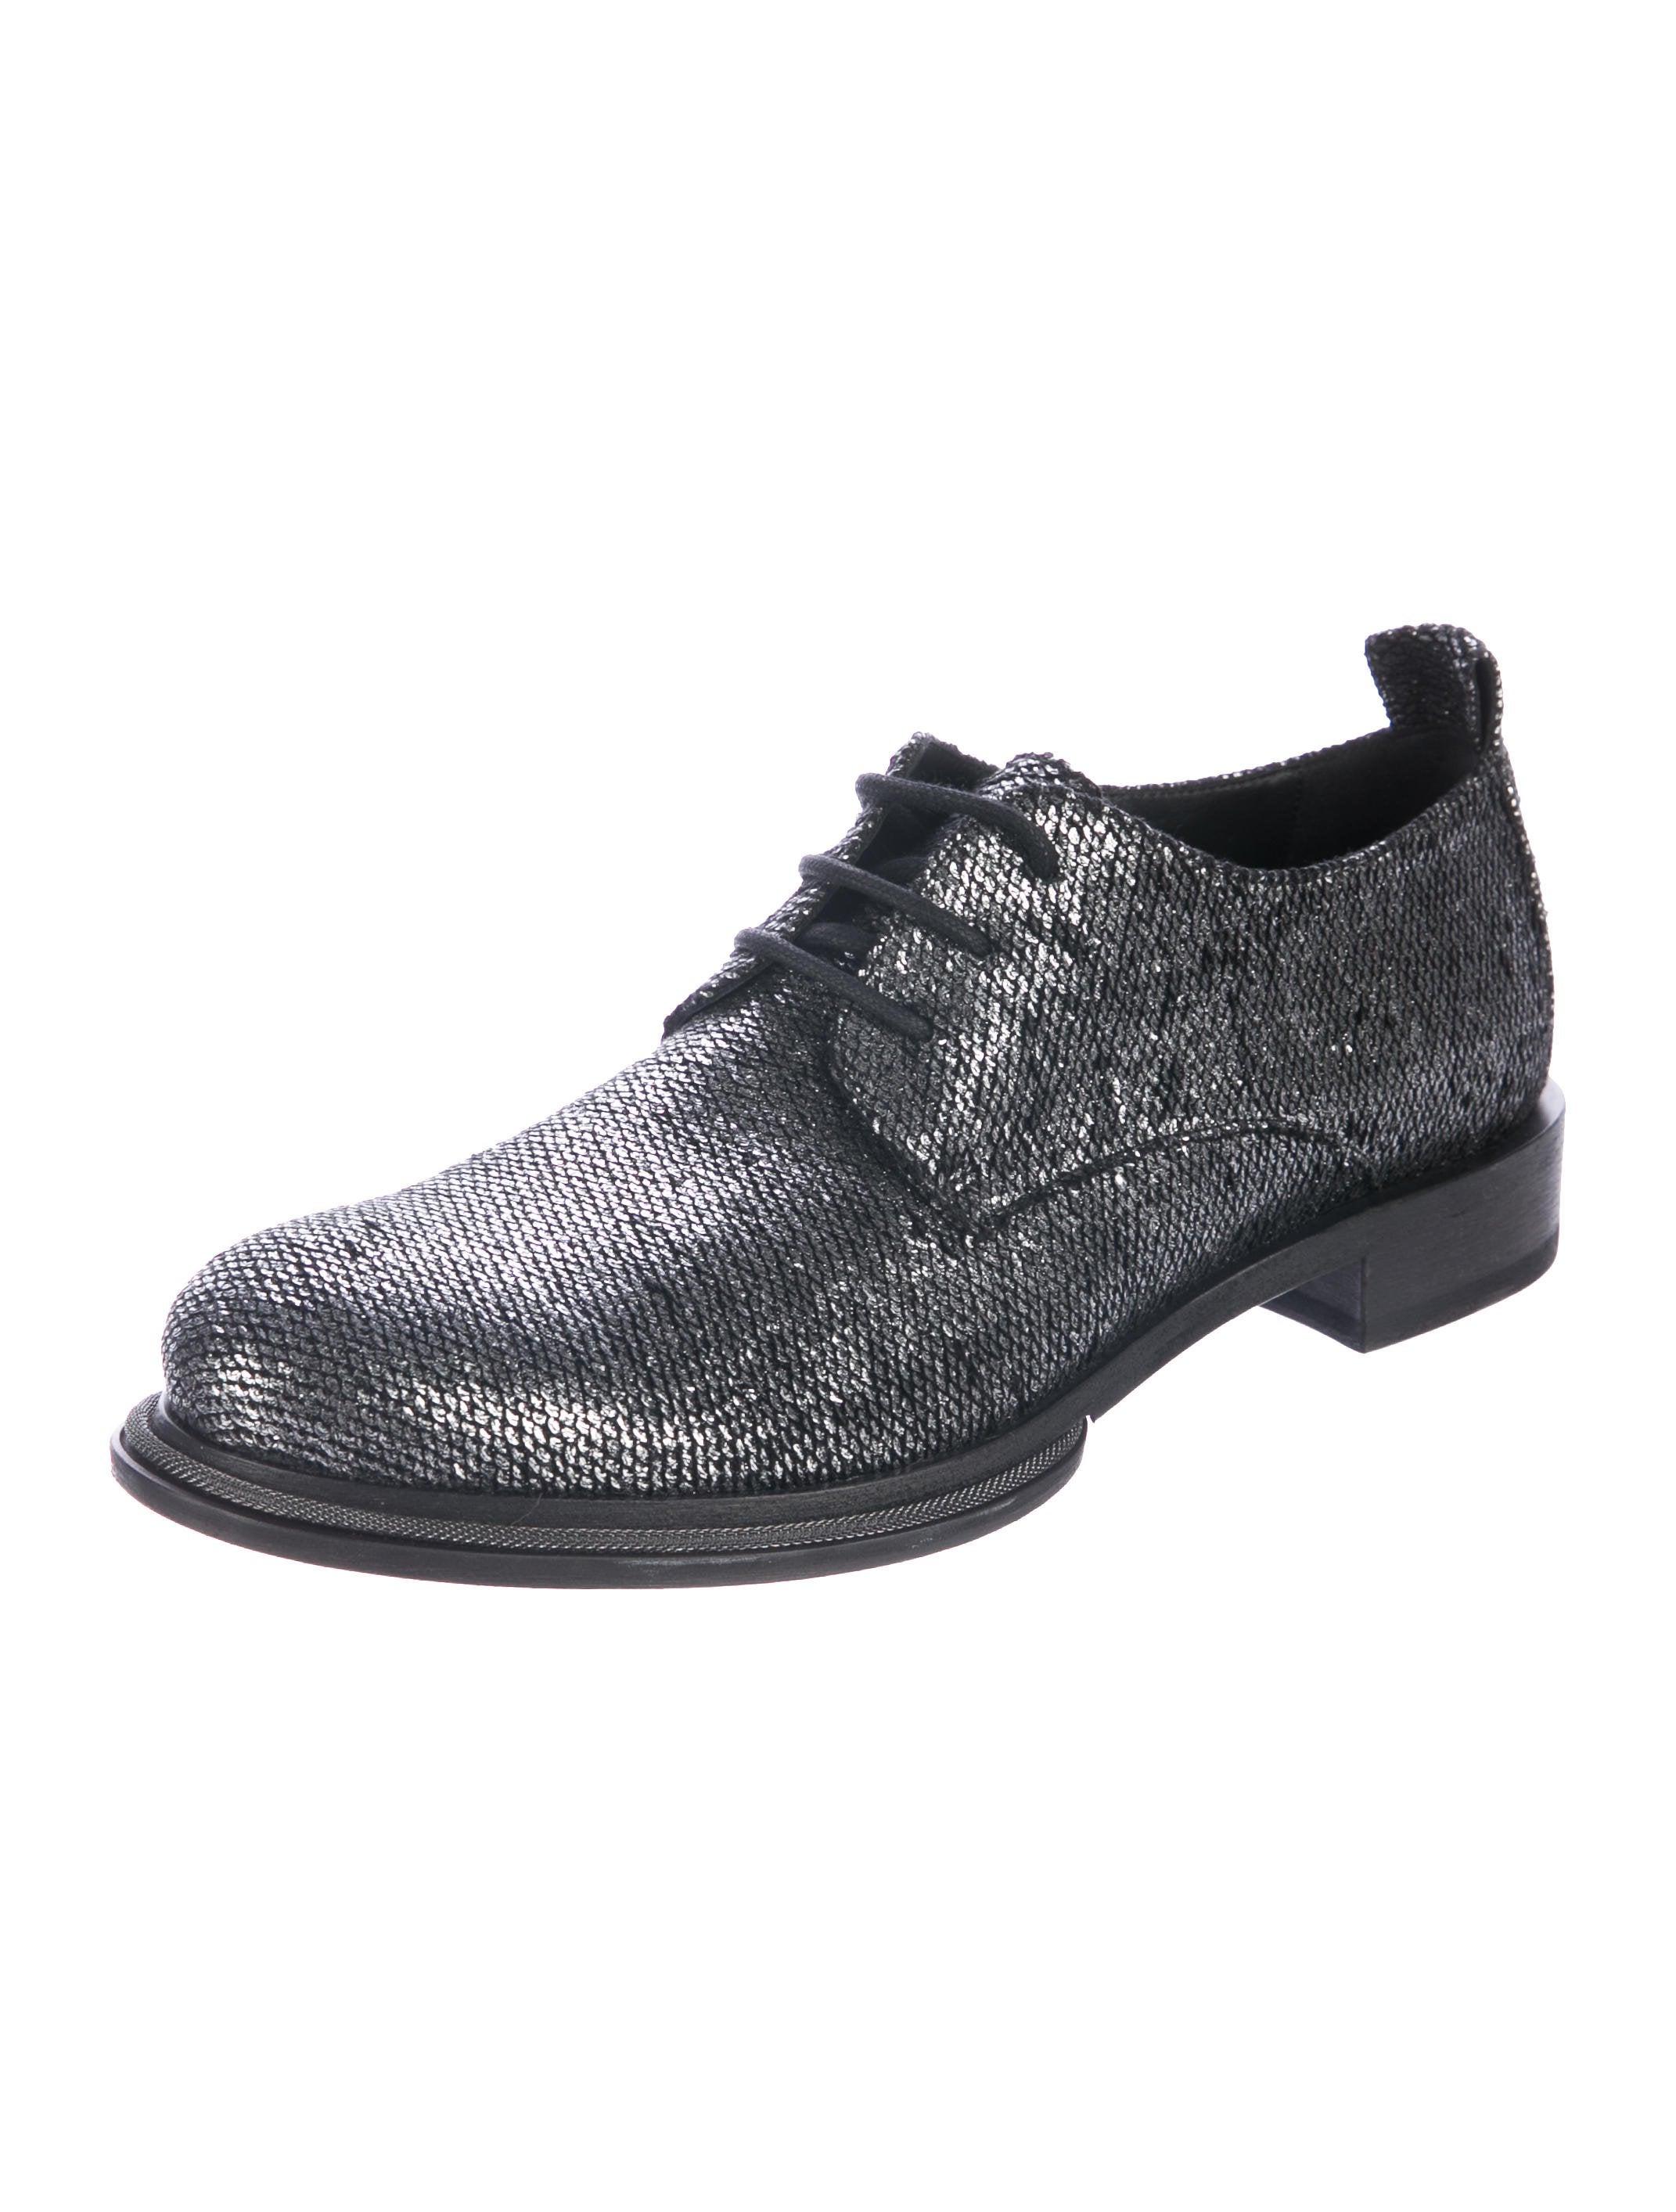 Ann Demeulemeester Embossed Scale Effect Oxfords cheap sale 100% original discount fast delivery clearance discounts discount best vBwF4p4